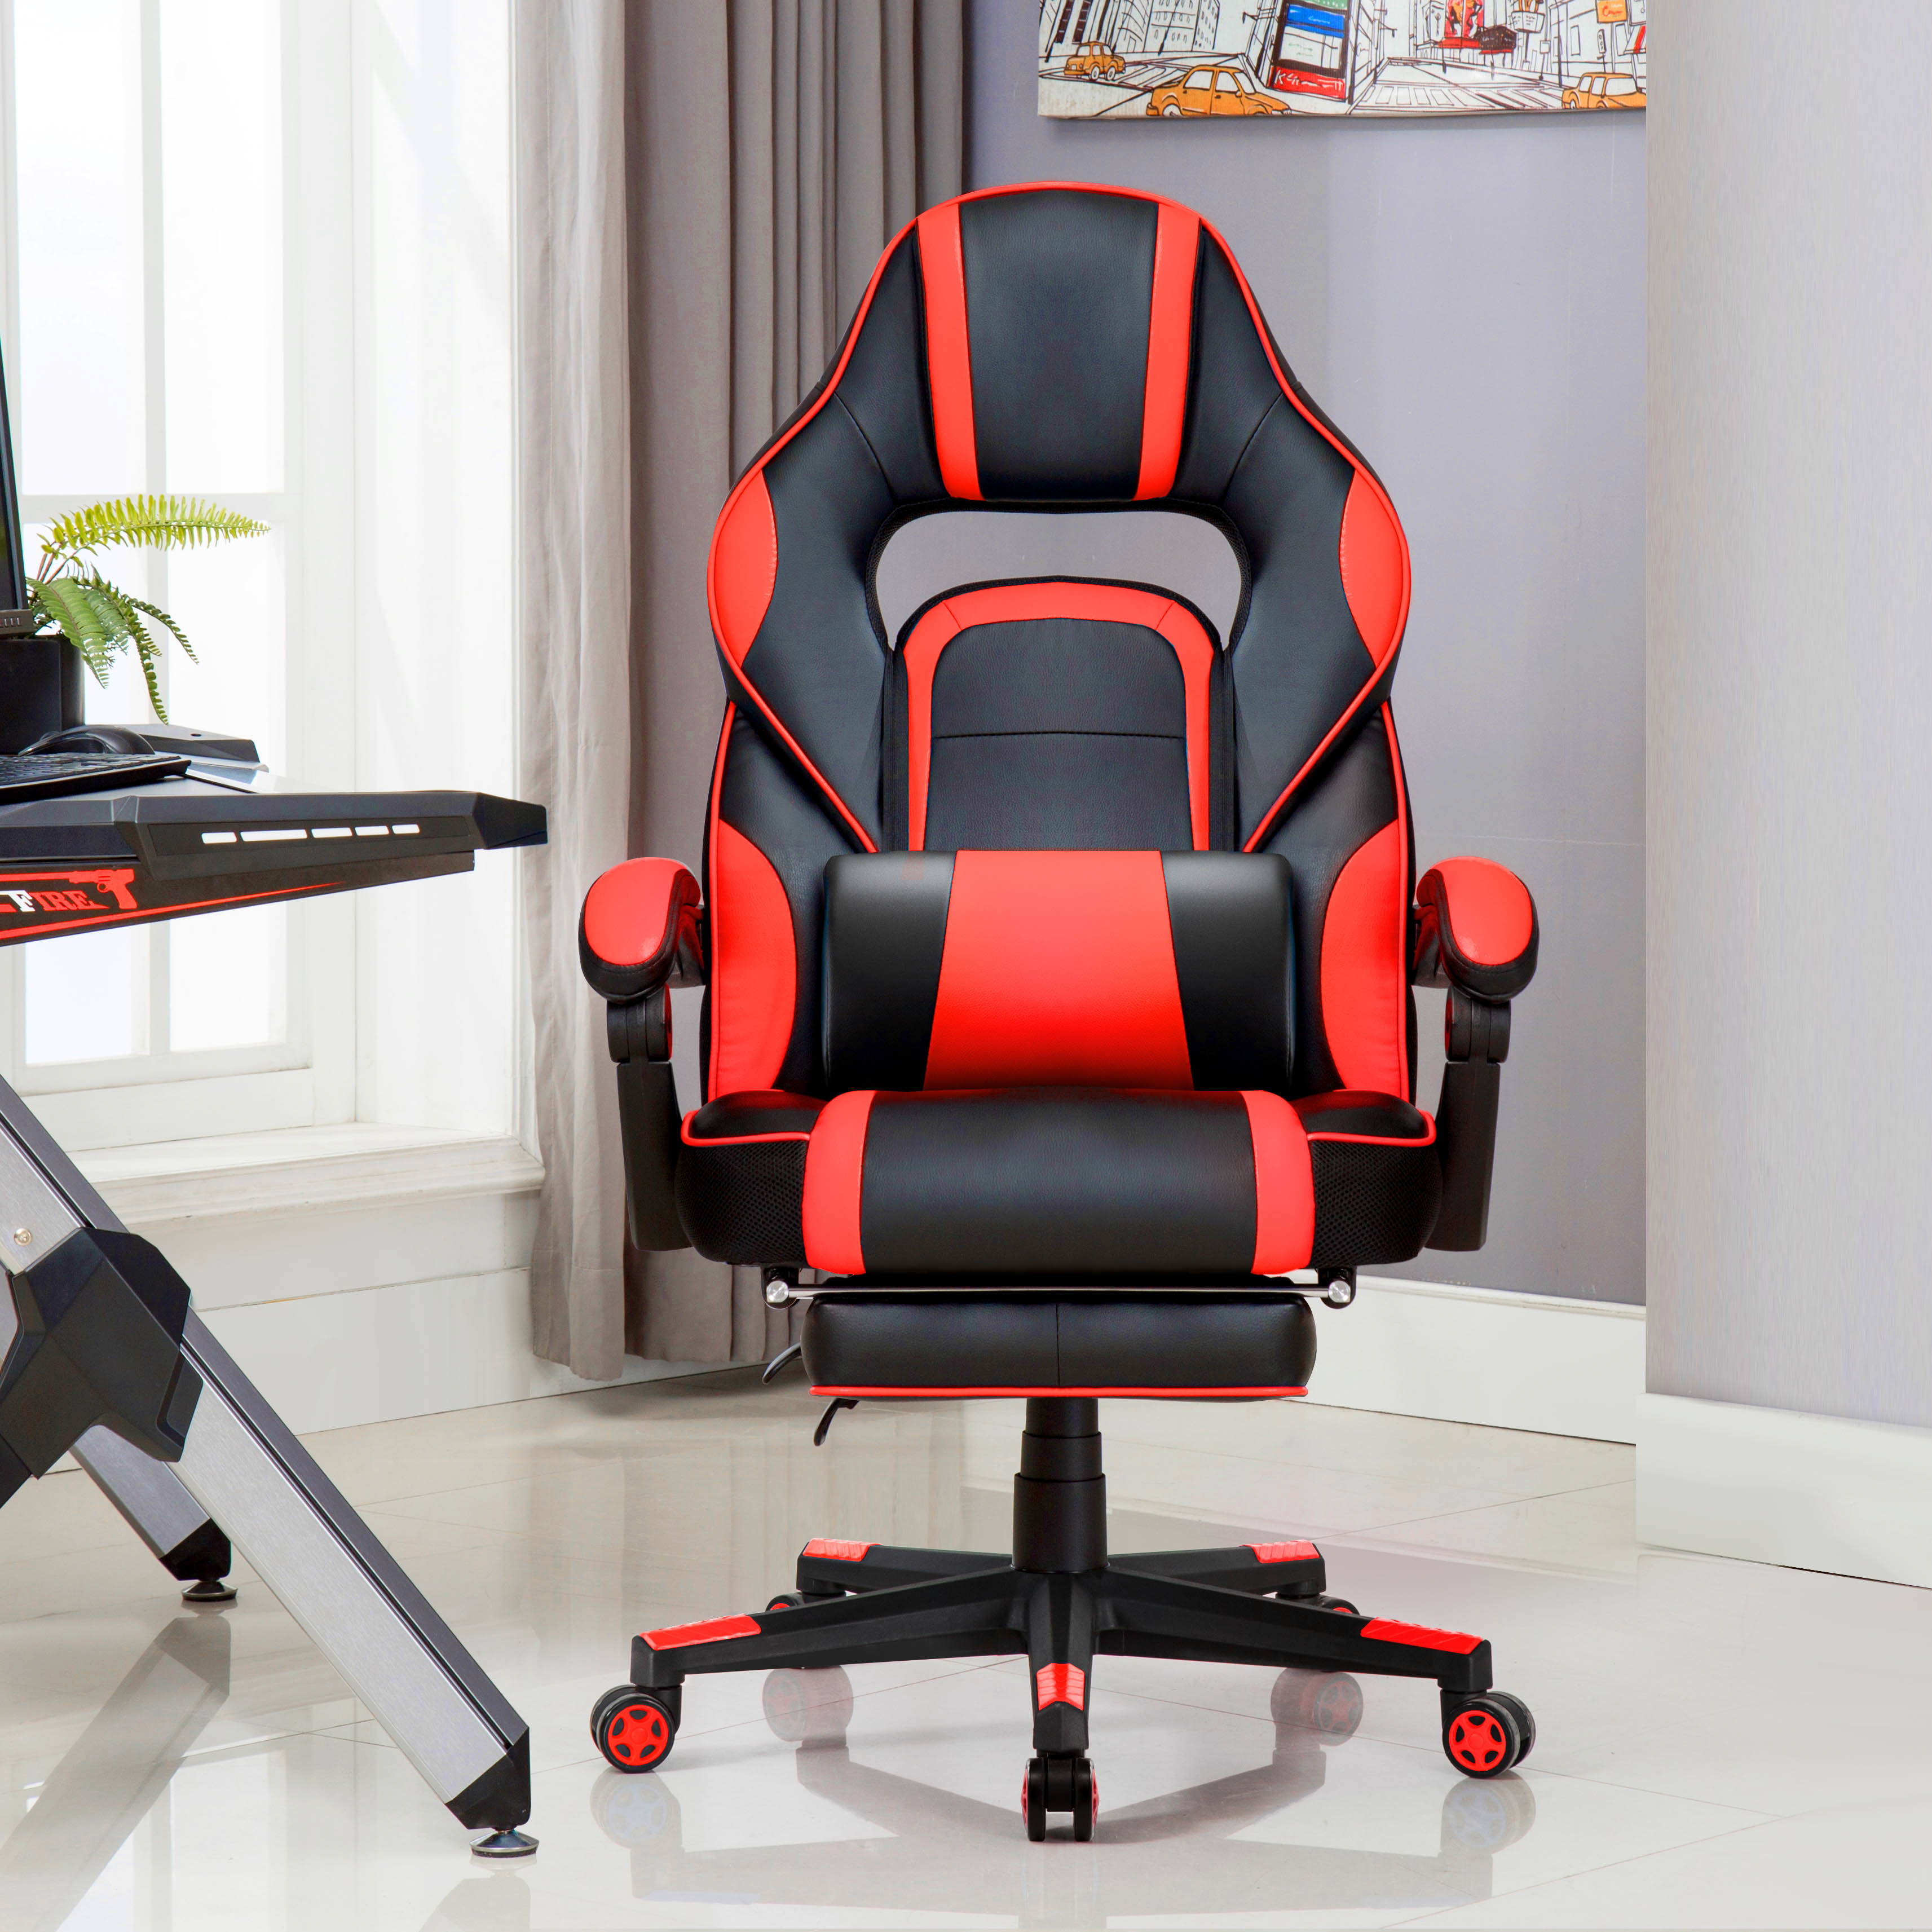 Gaming Chair Ergonomic Executive Chair For Gamers Office Chair With Folding Footrest Comfortable Lumbar Cushion For Work